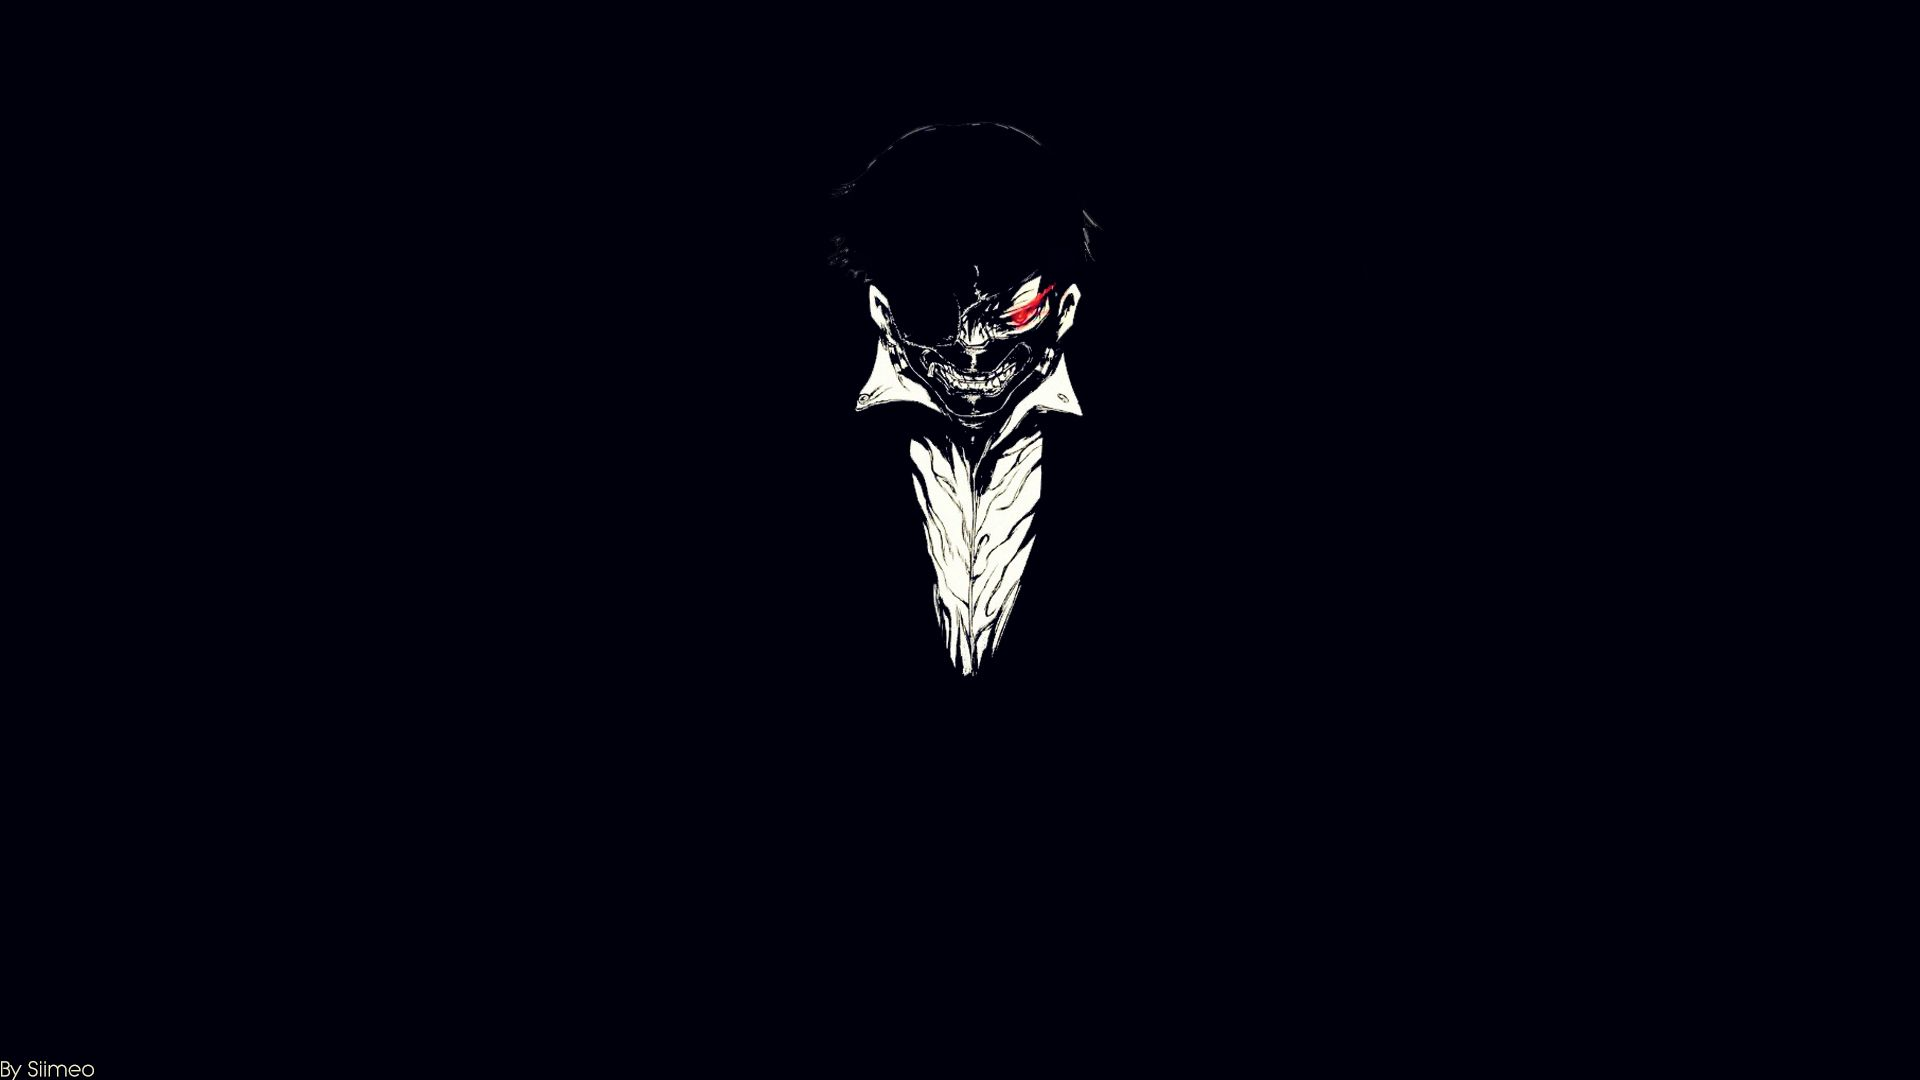 Tokyo Ghoul HD Wallpapers Backgrounds Wallpaper 1920×1080 Ghoul Wallpapers ( 32 Wallpapers) |